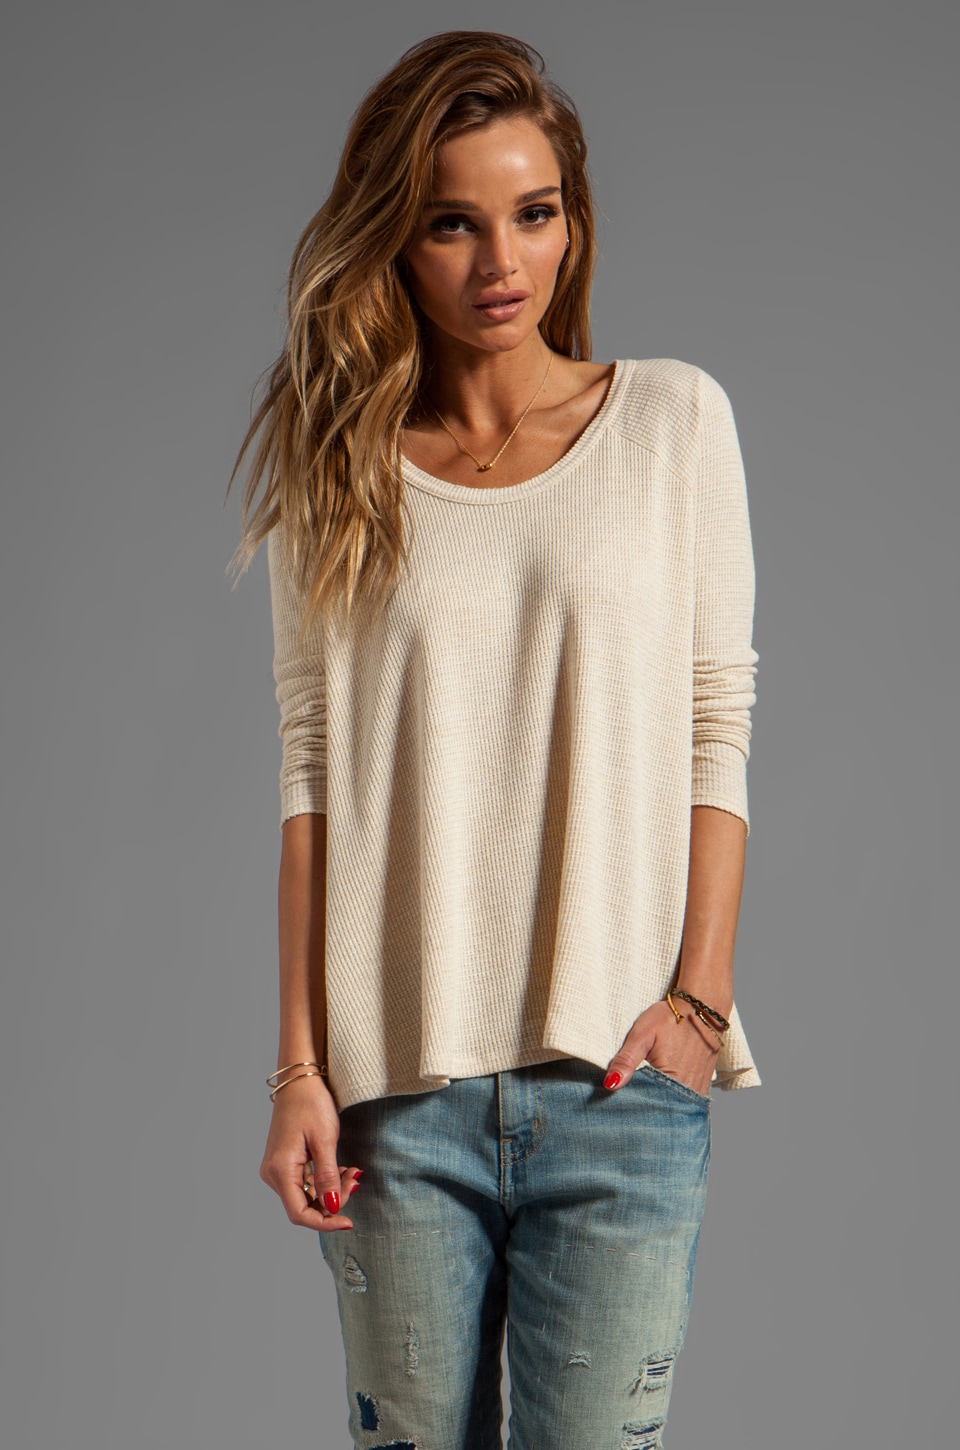 Free People Rockabilly Raglan Thermal in Heather Oatmeal